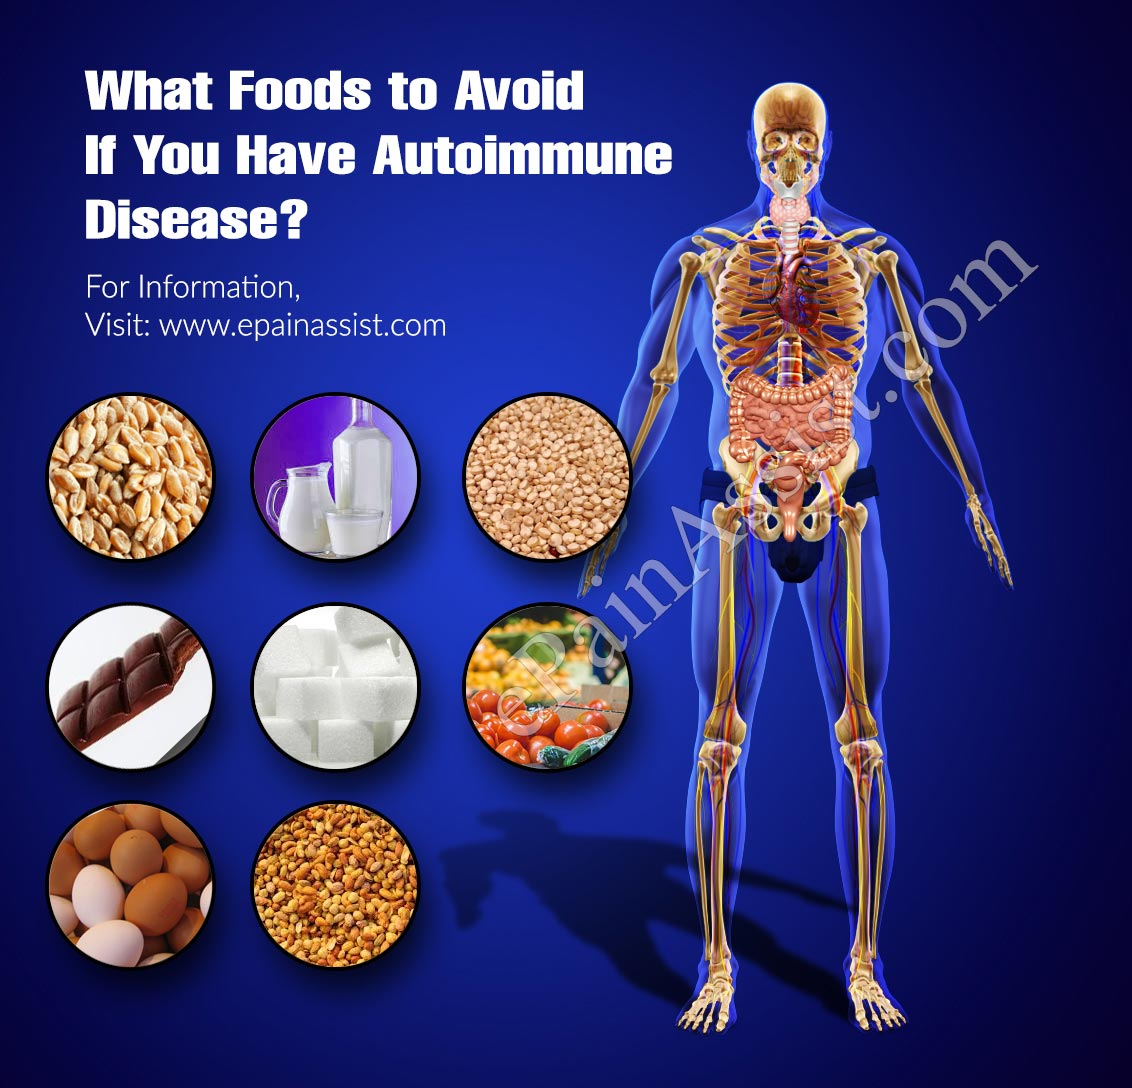 What Foods to Avoid If You Have Autoimmune Disease?